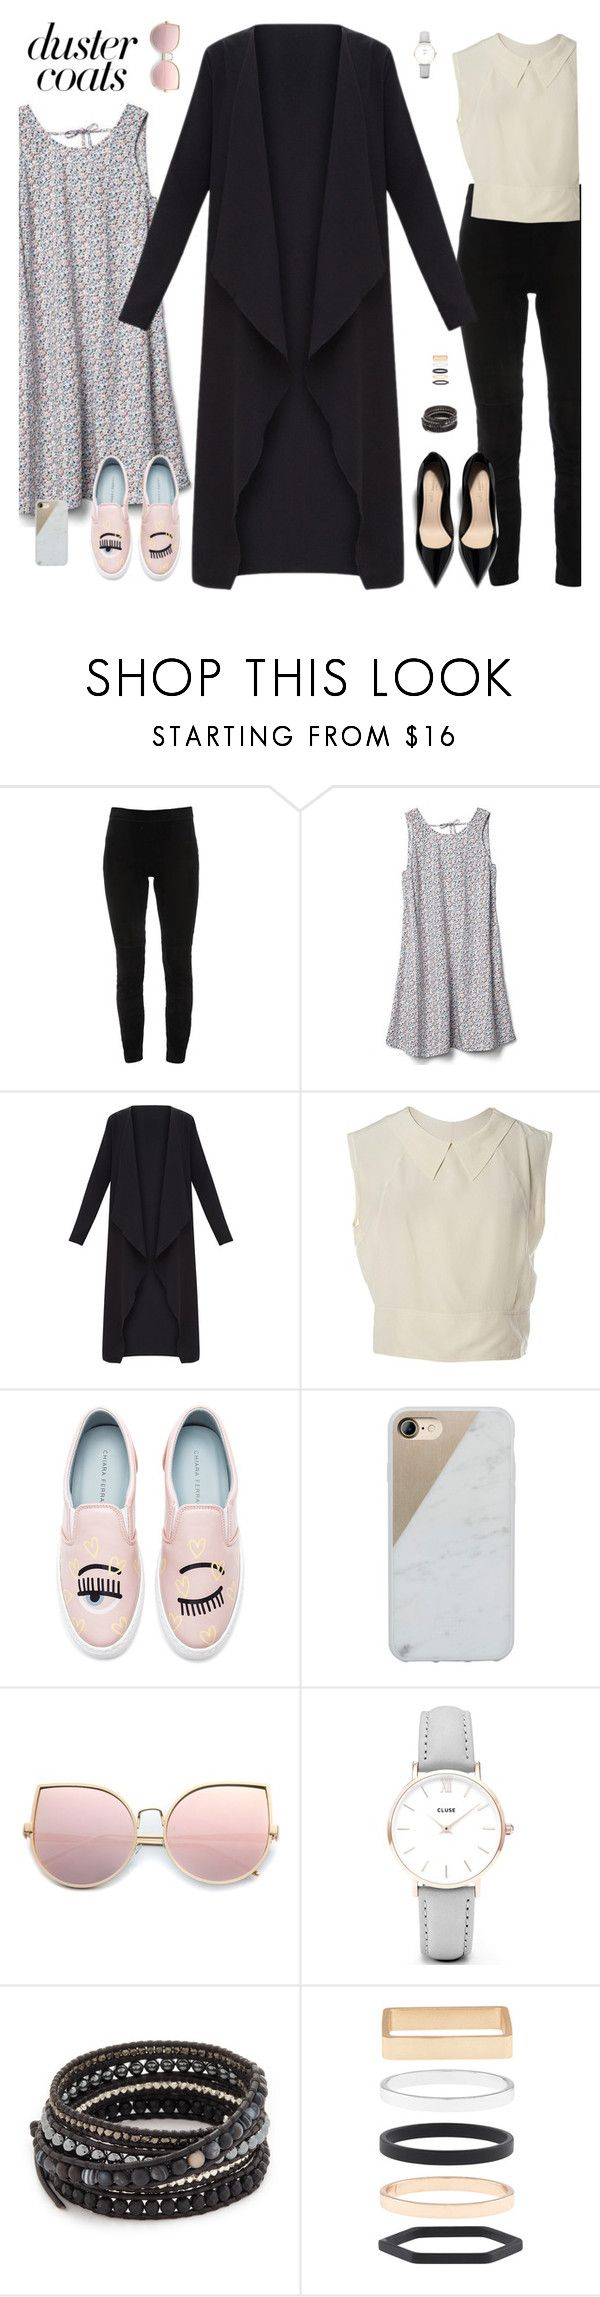 """#dustercoats"" by tothineownselfbtrue ❤ liked on Polyvore featuring Elie Tahari, Gap, Chanel, Chiara Ferragni, Native Union, CLUSE, Chan Luu, Accessorize and DusterCoats"